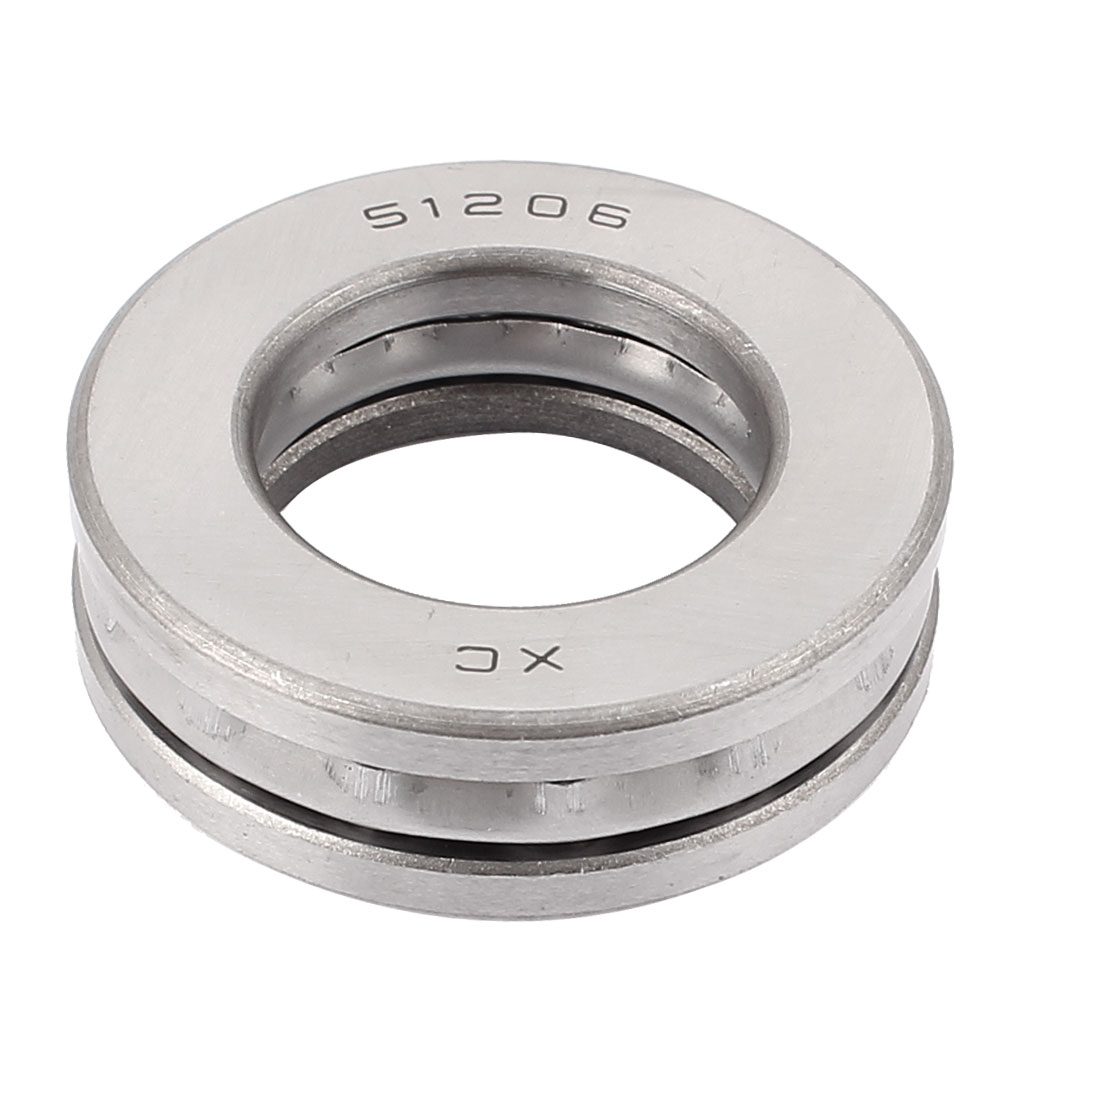 51206 Carbon Steel Axial Thrust Ball Bearing 30mmx52mmx16mm